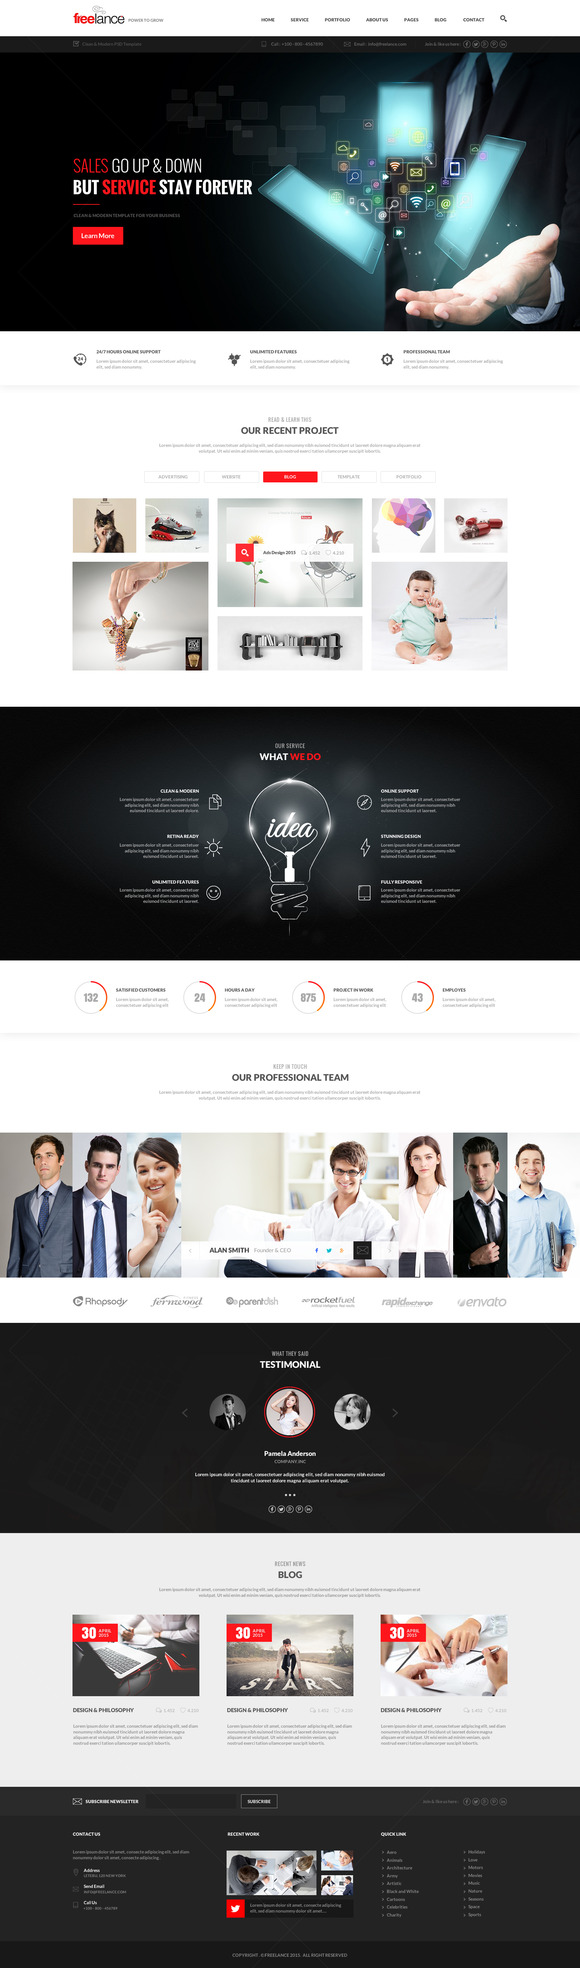 Freelance Business PSD Template